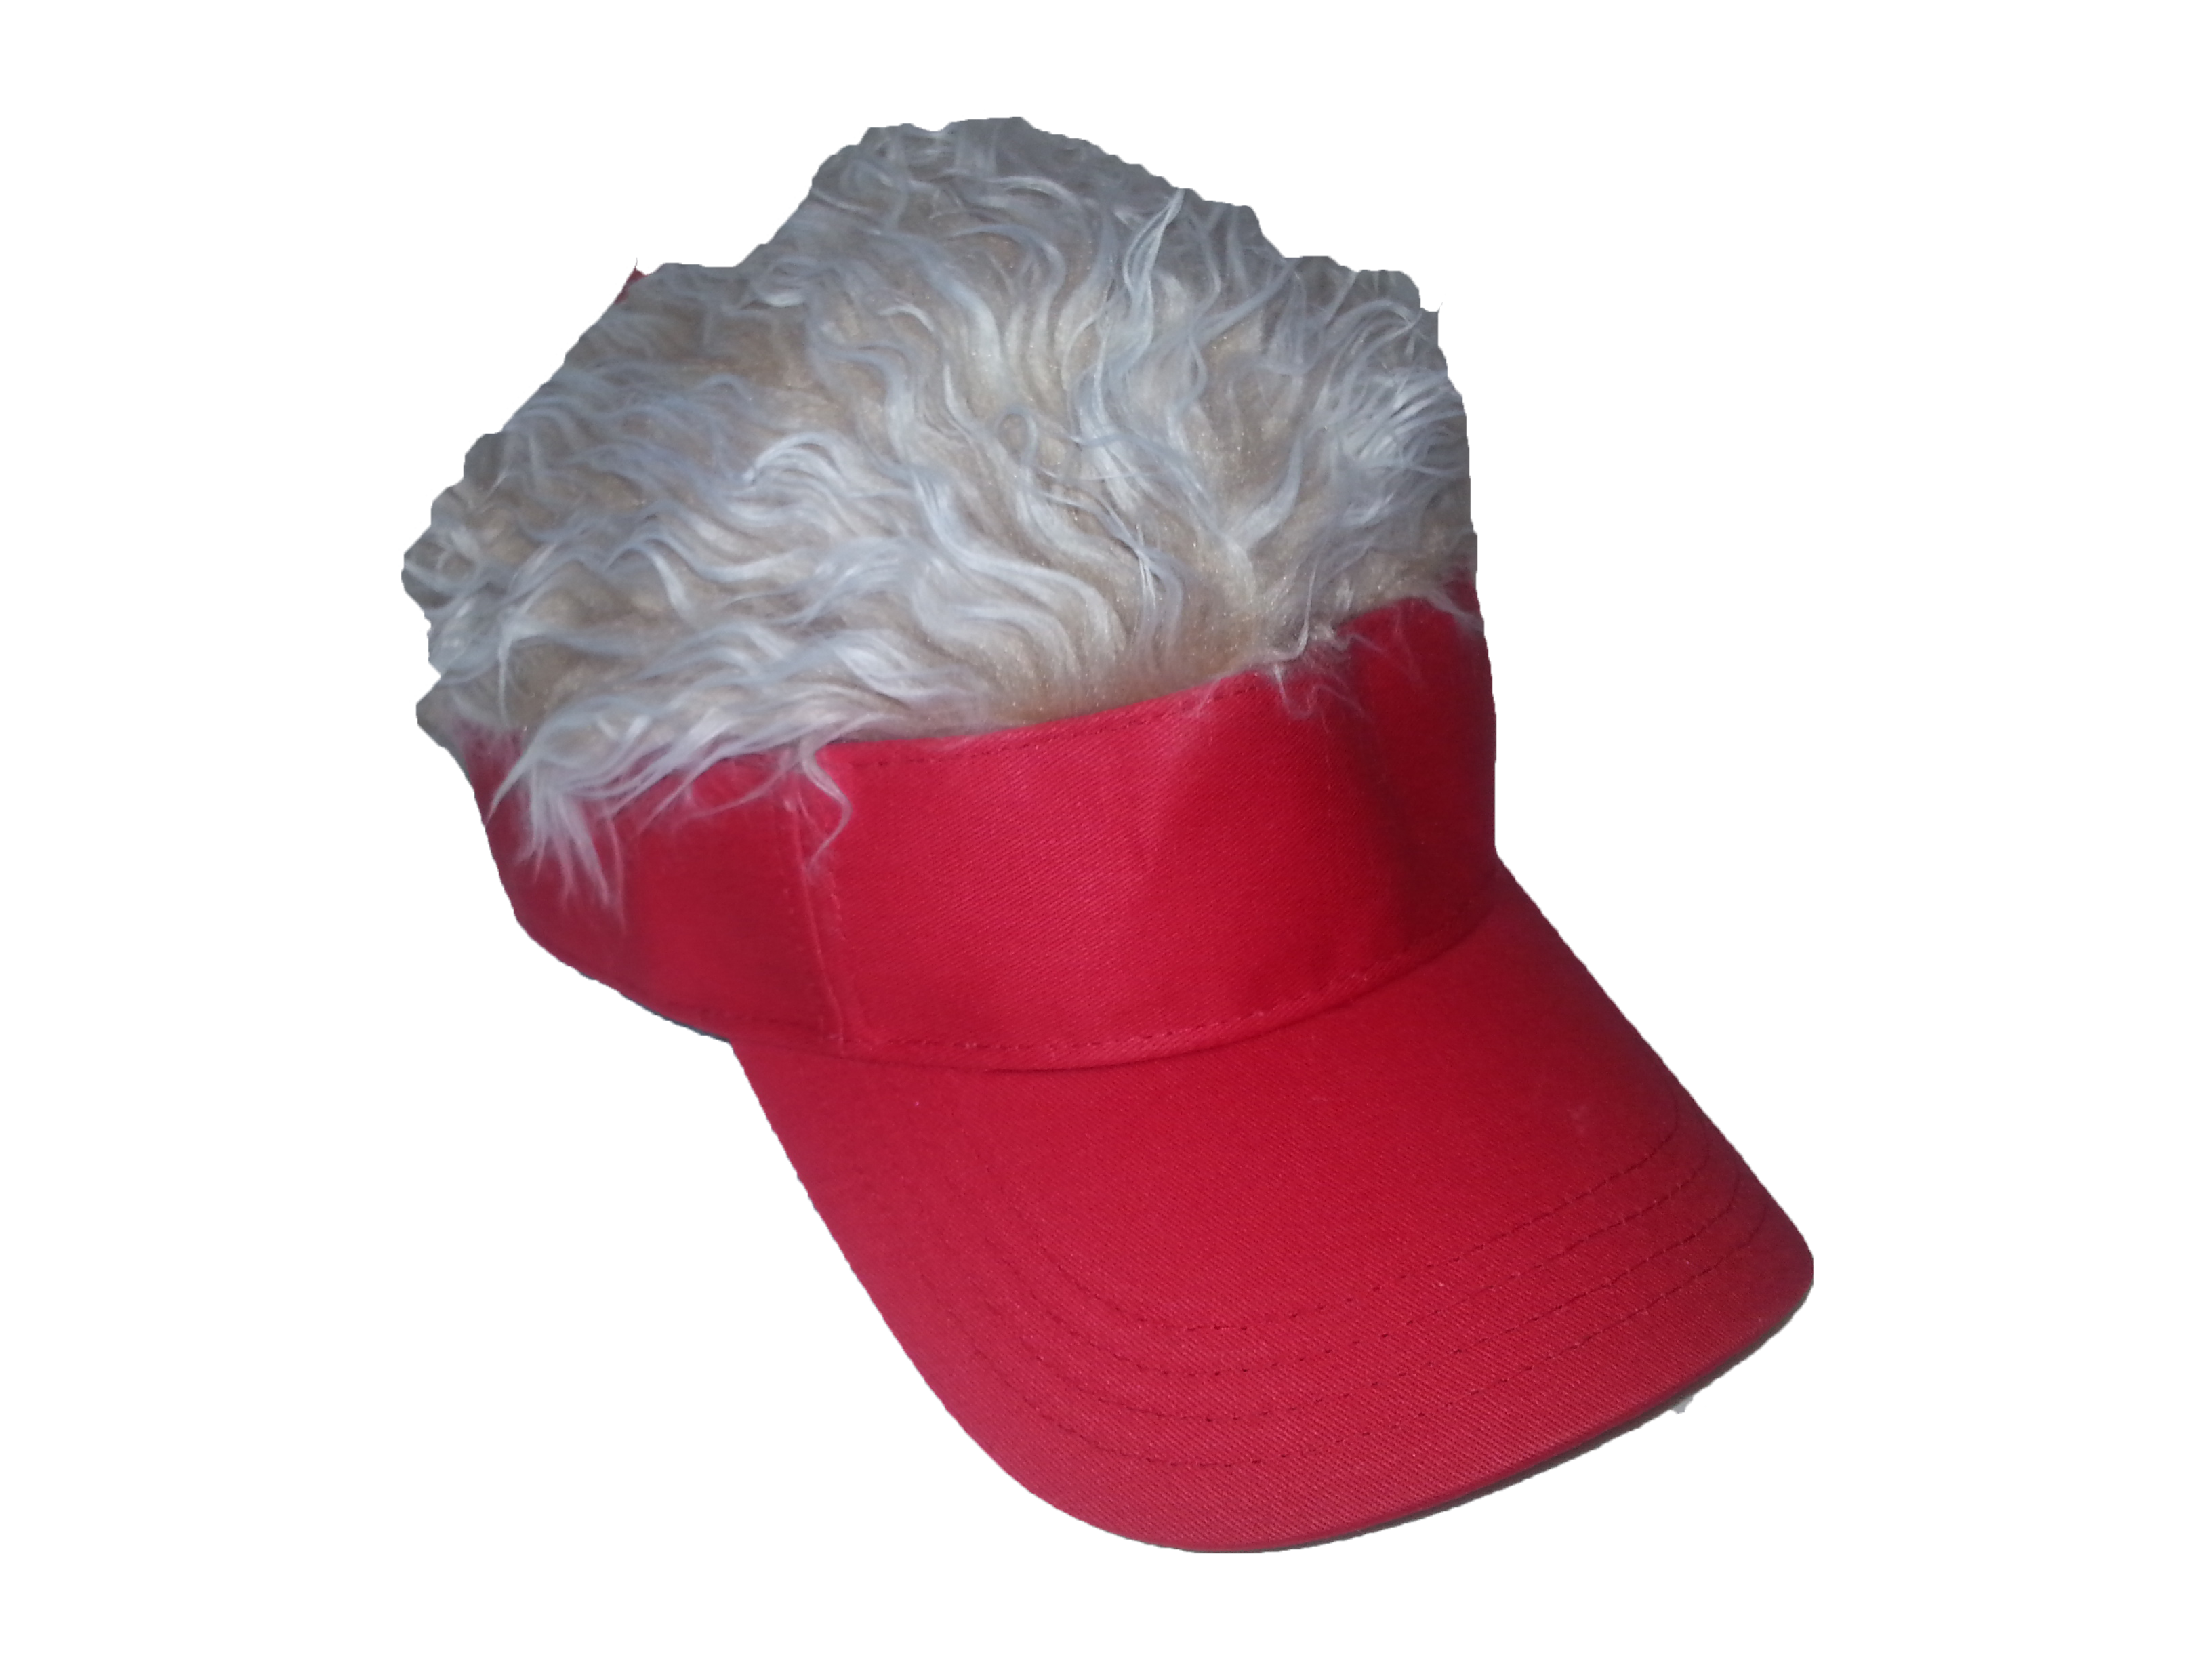 Guy Fieri Flair Hair Red Visor with Blonde Hair  ConceptOne  FlairHair 5a5282a24aac